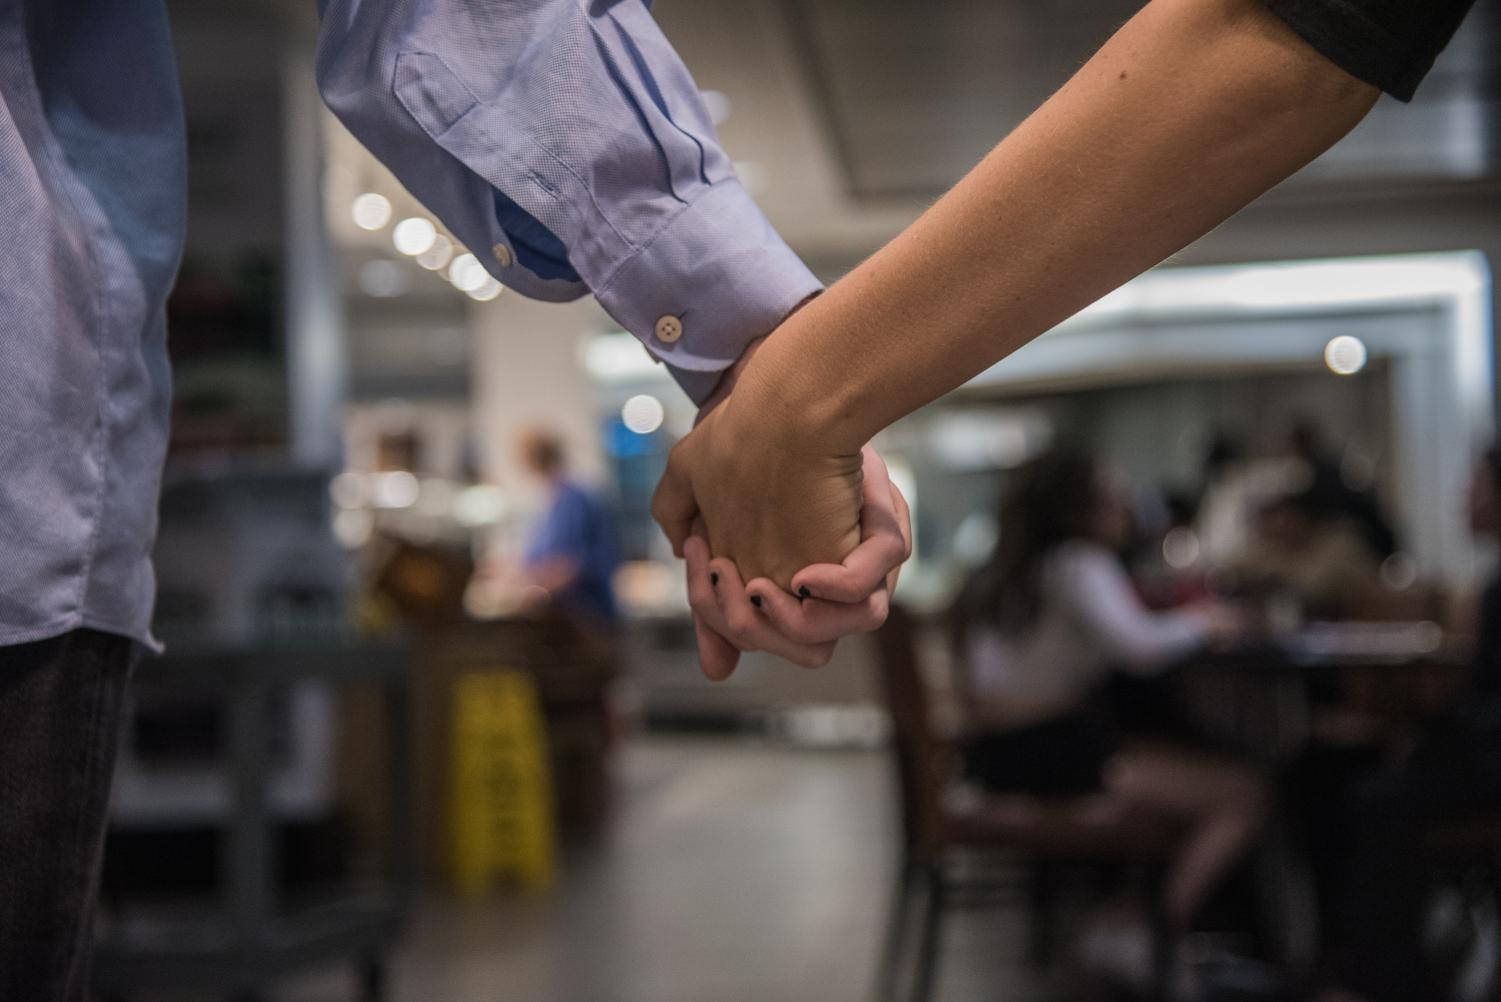 Dining halls are not the greatest spot for a first date, but at least they're affordable.